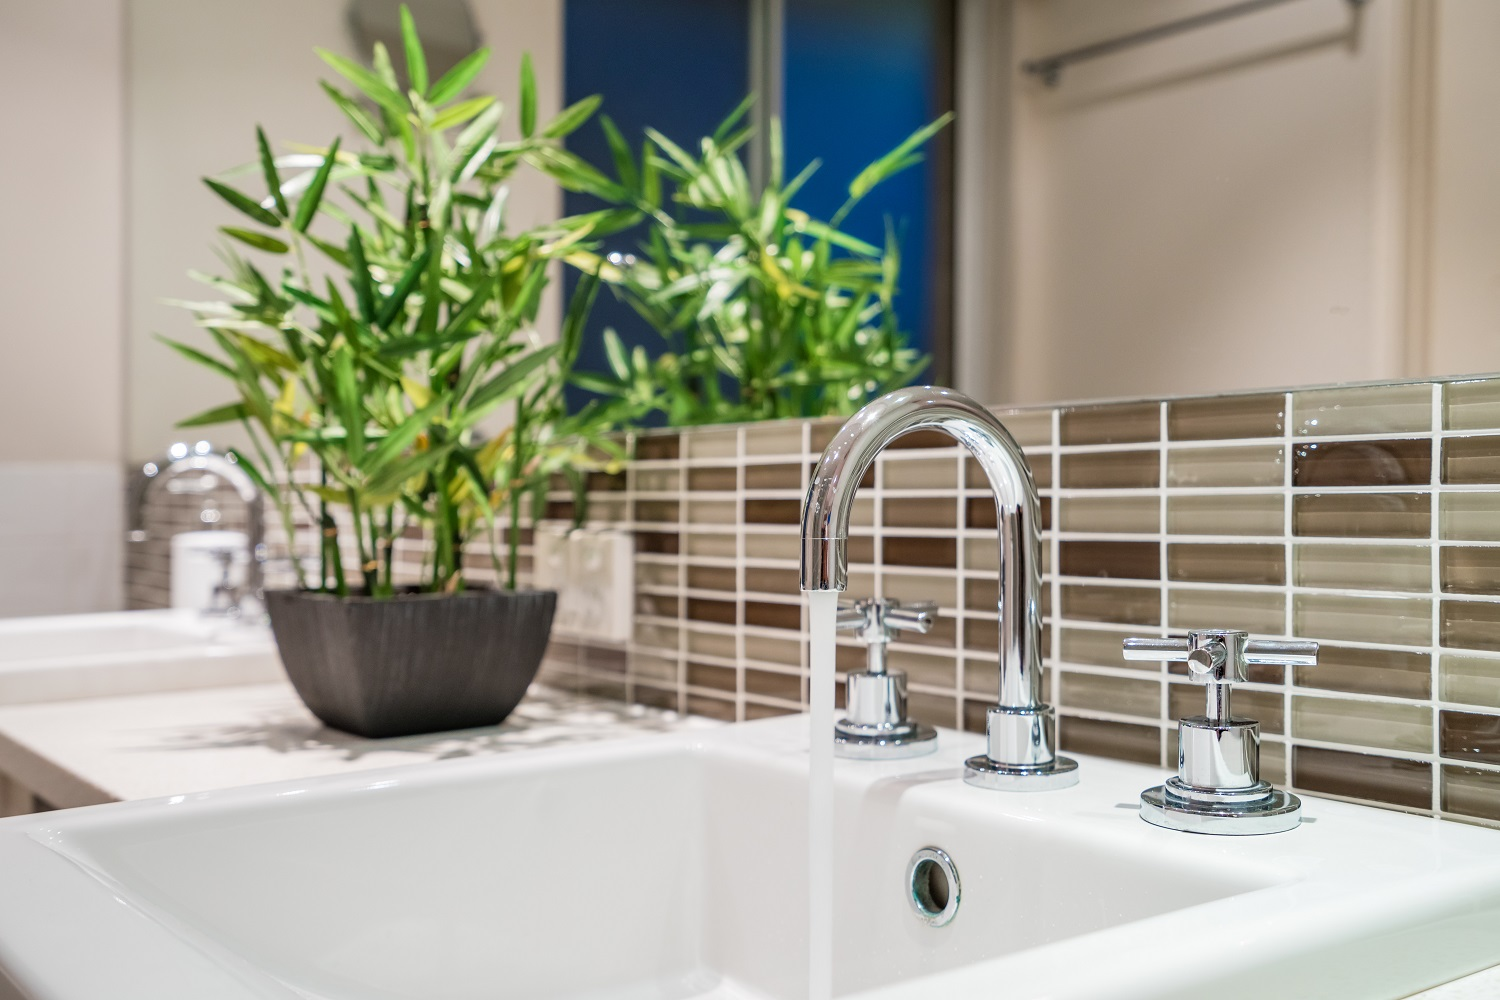 Bathroom Staging Tips - Sell a Home in Lakewood